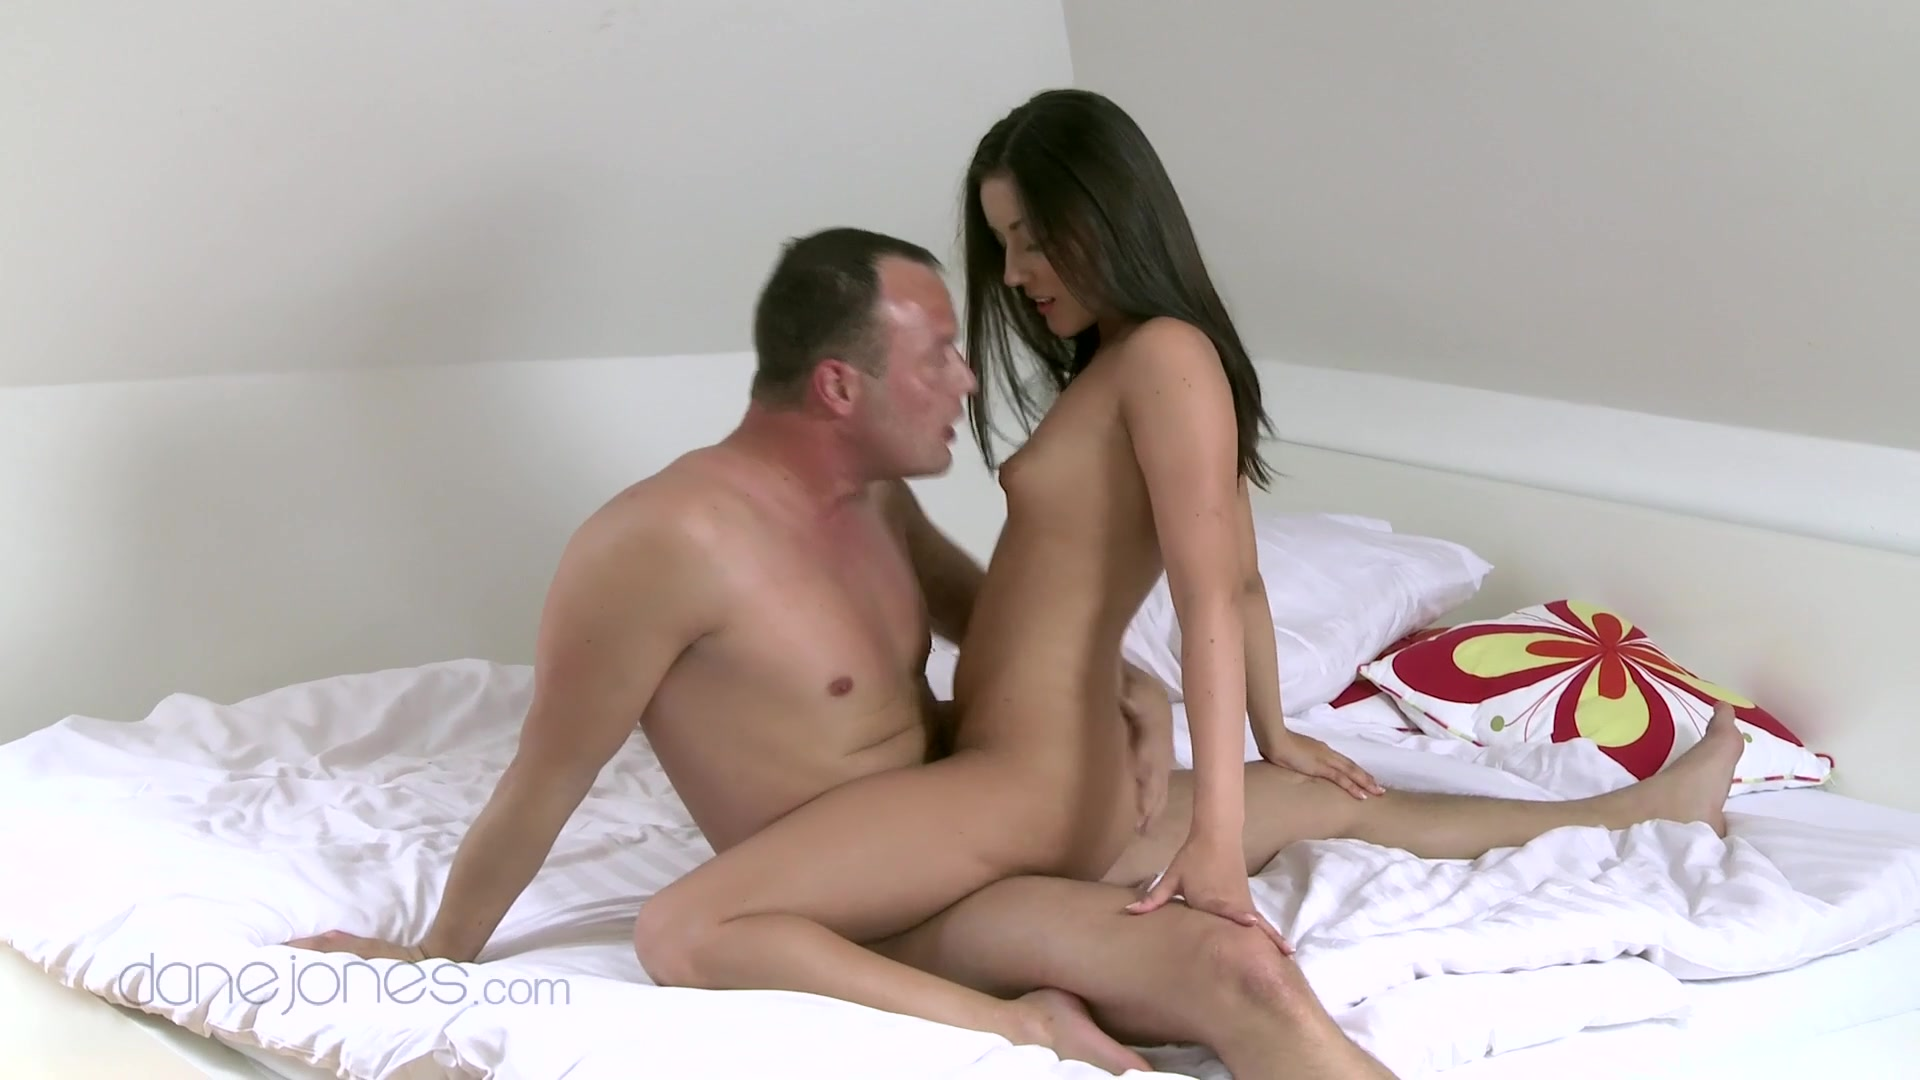 Amateur video of a nice tits Czech girlfriend getting fucked